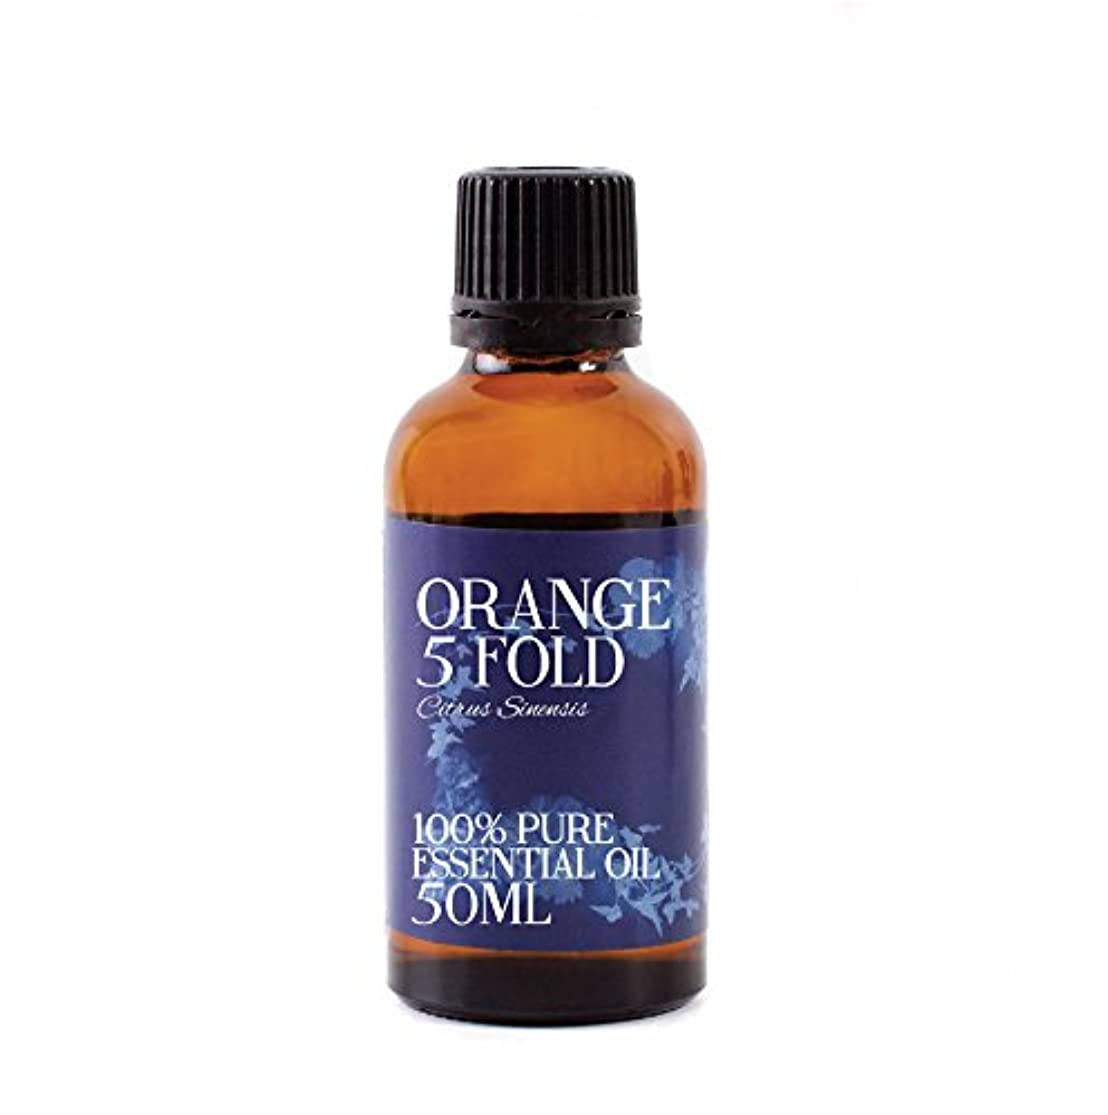 球体印をつけるビットMystic Moments | Orange 5 Fold Essential Oil - 50ml - 100% Pure